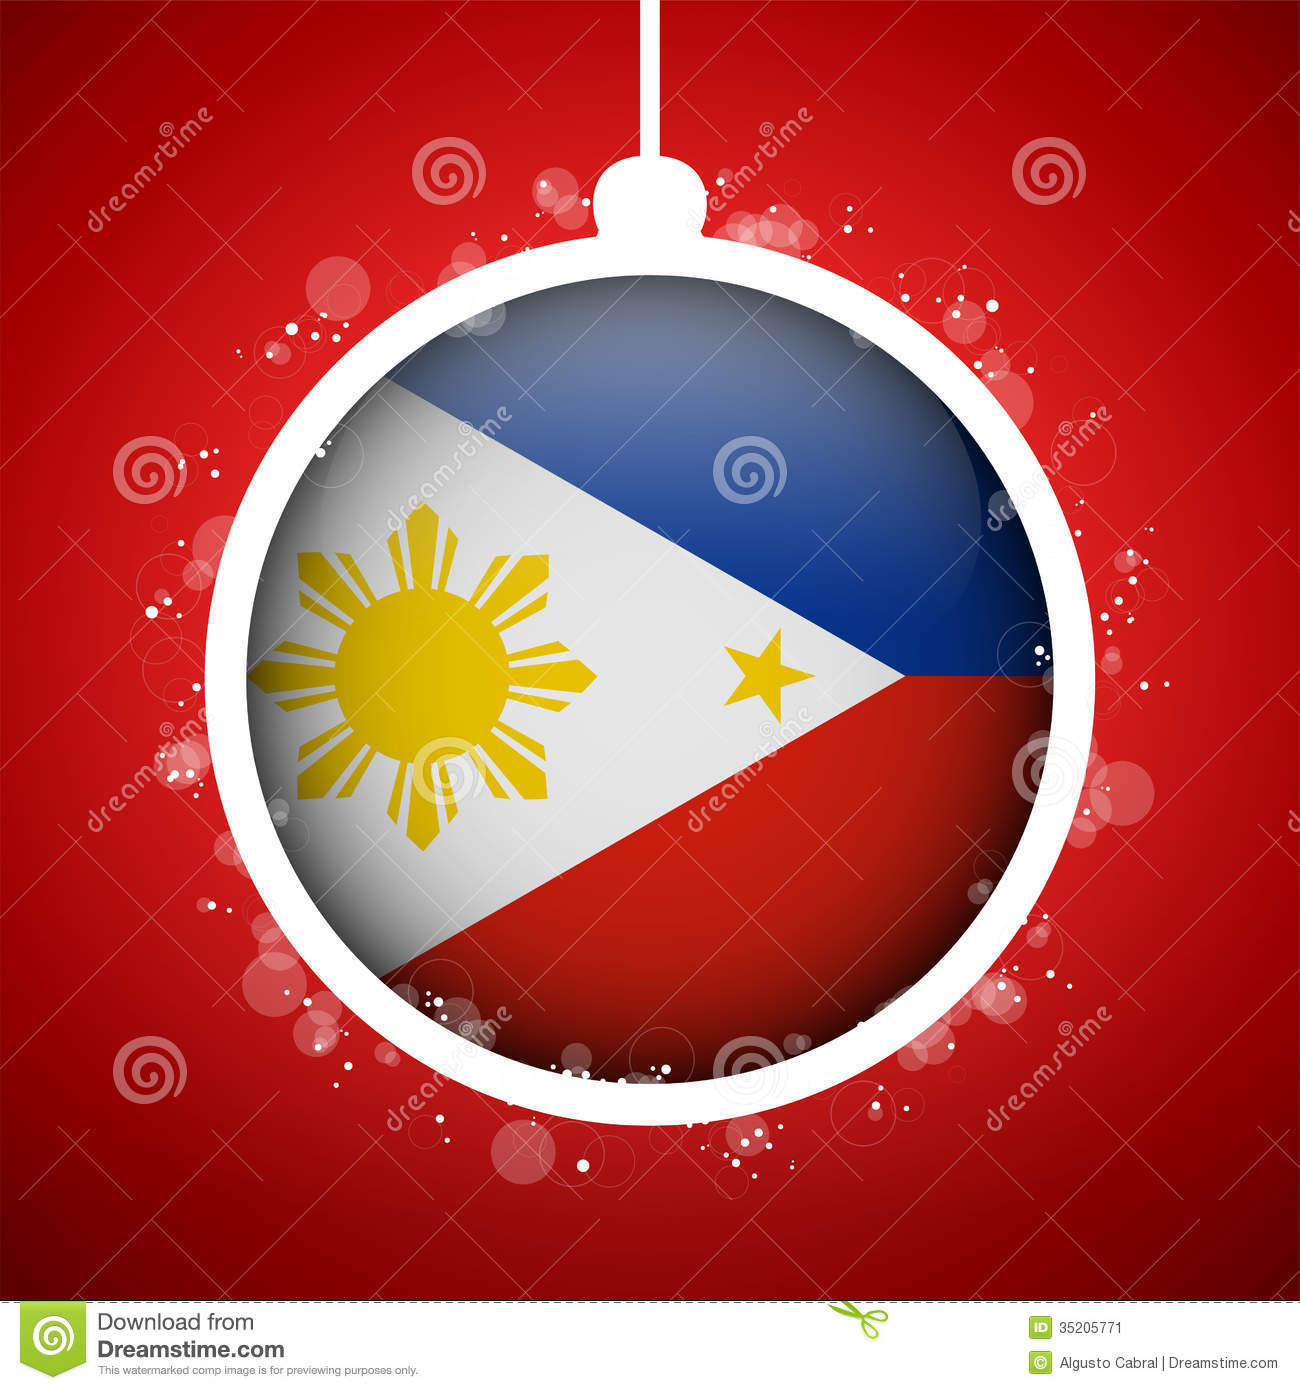 Merry Christmas Red Ball With Flag Philippines Stock Image   Image